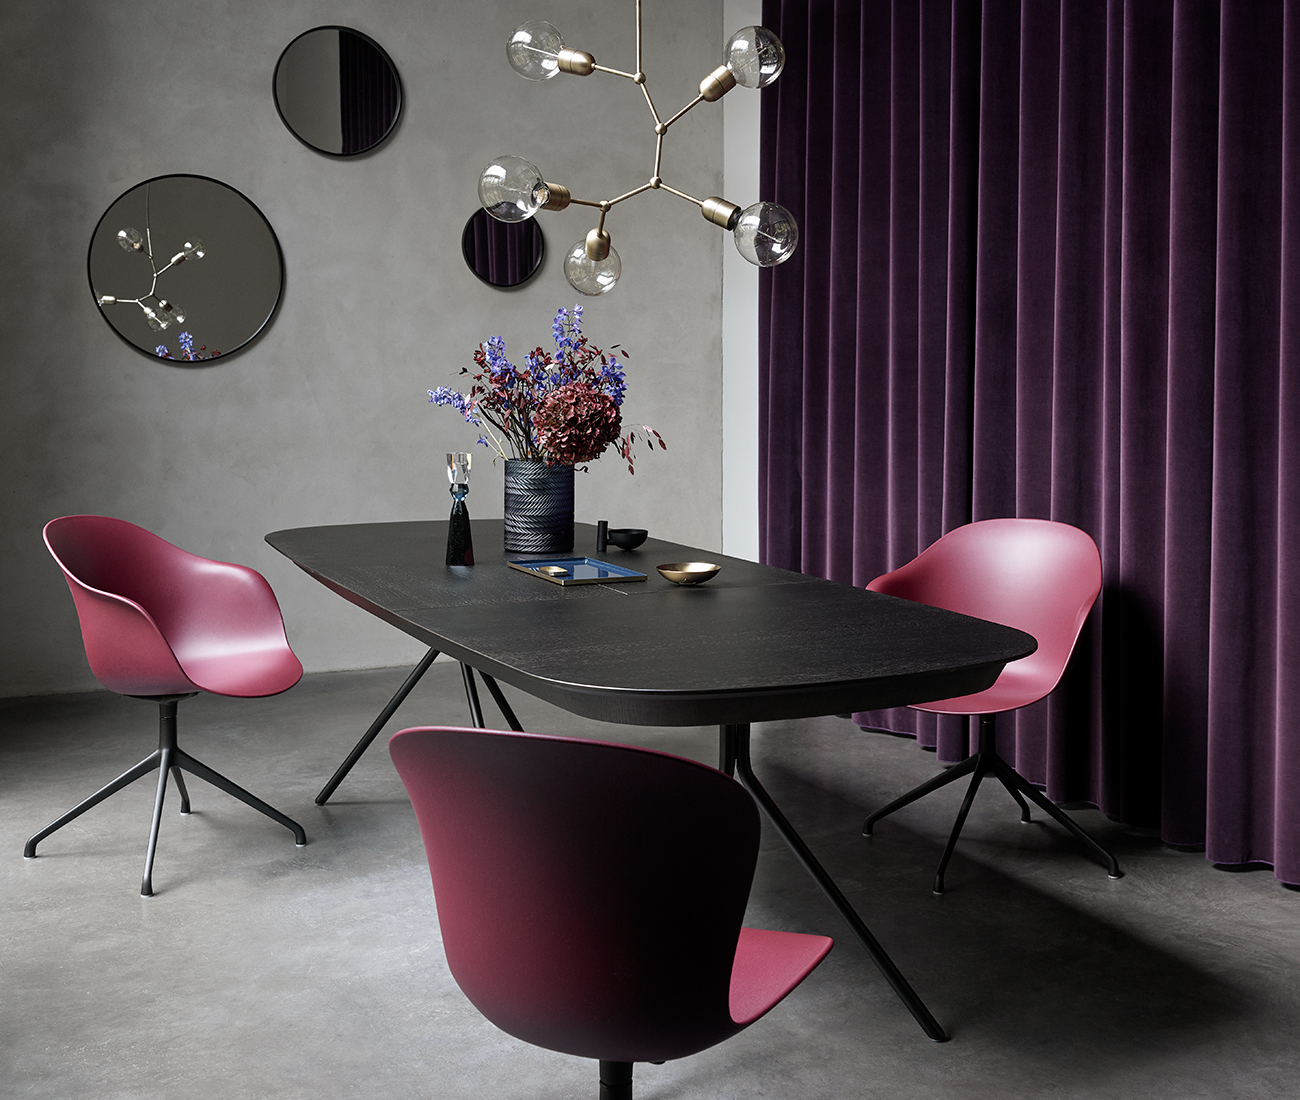 Dark dining table with red Adelaide chairs